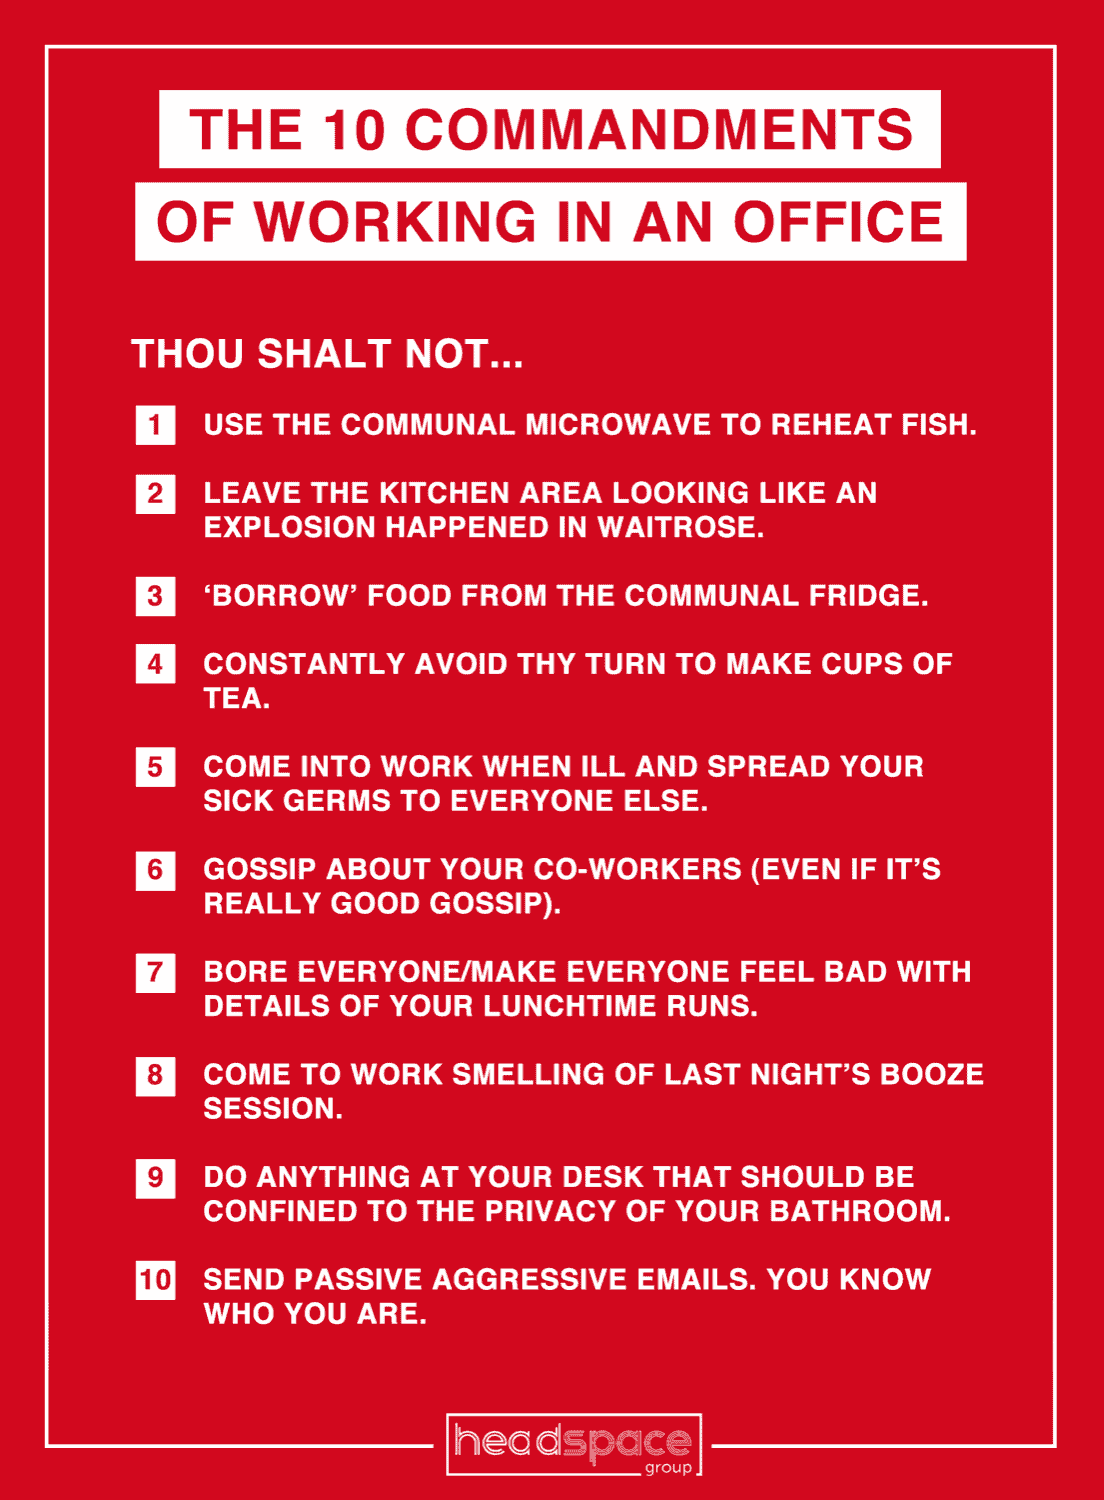 The 10 commandments of working in an office infographic